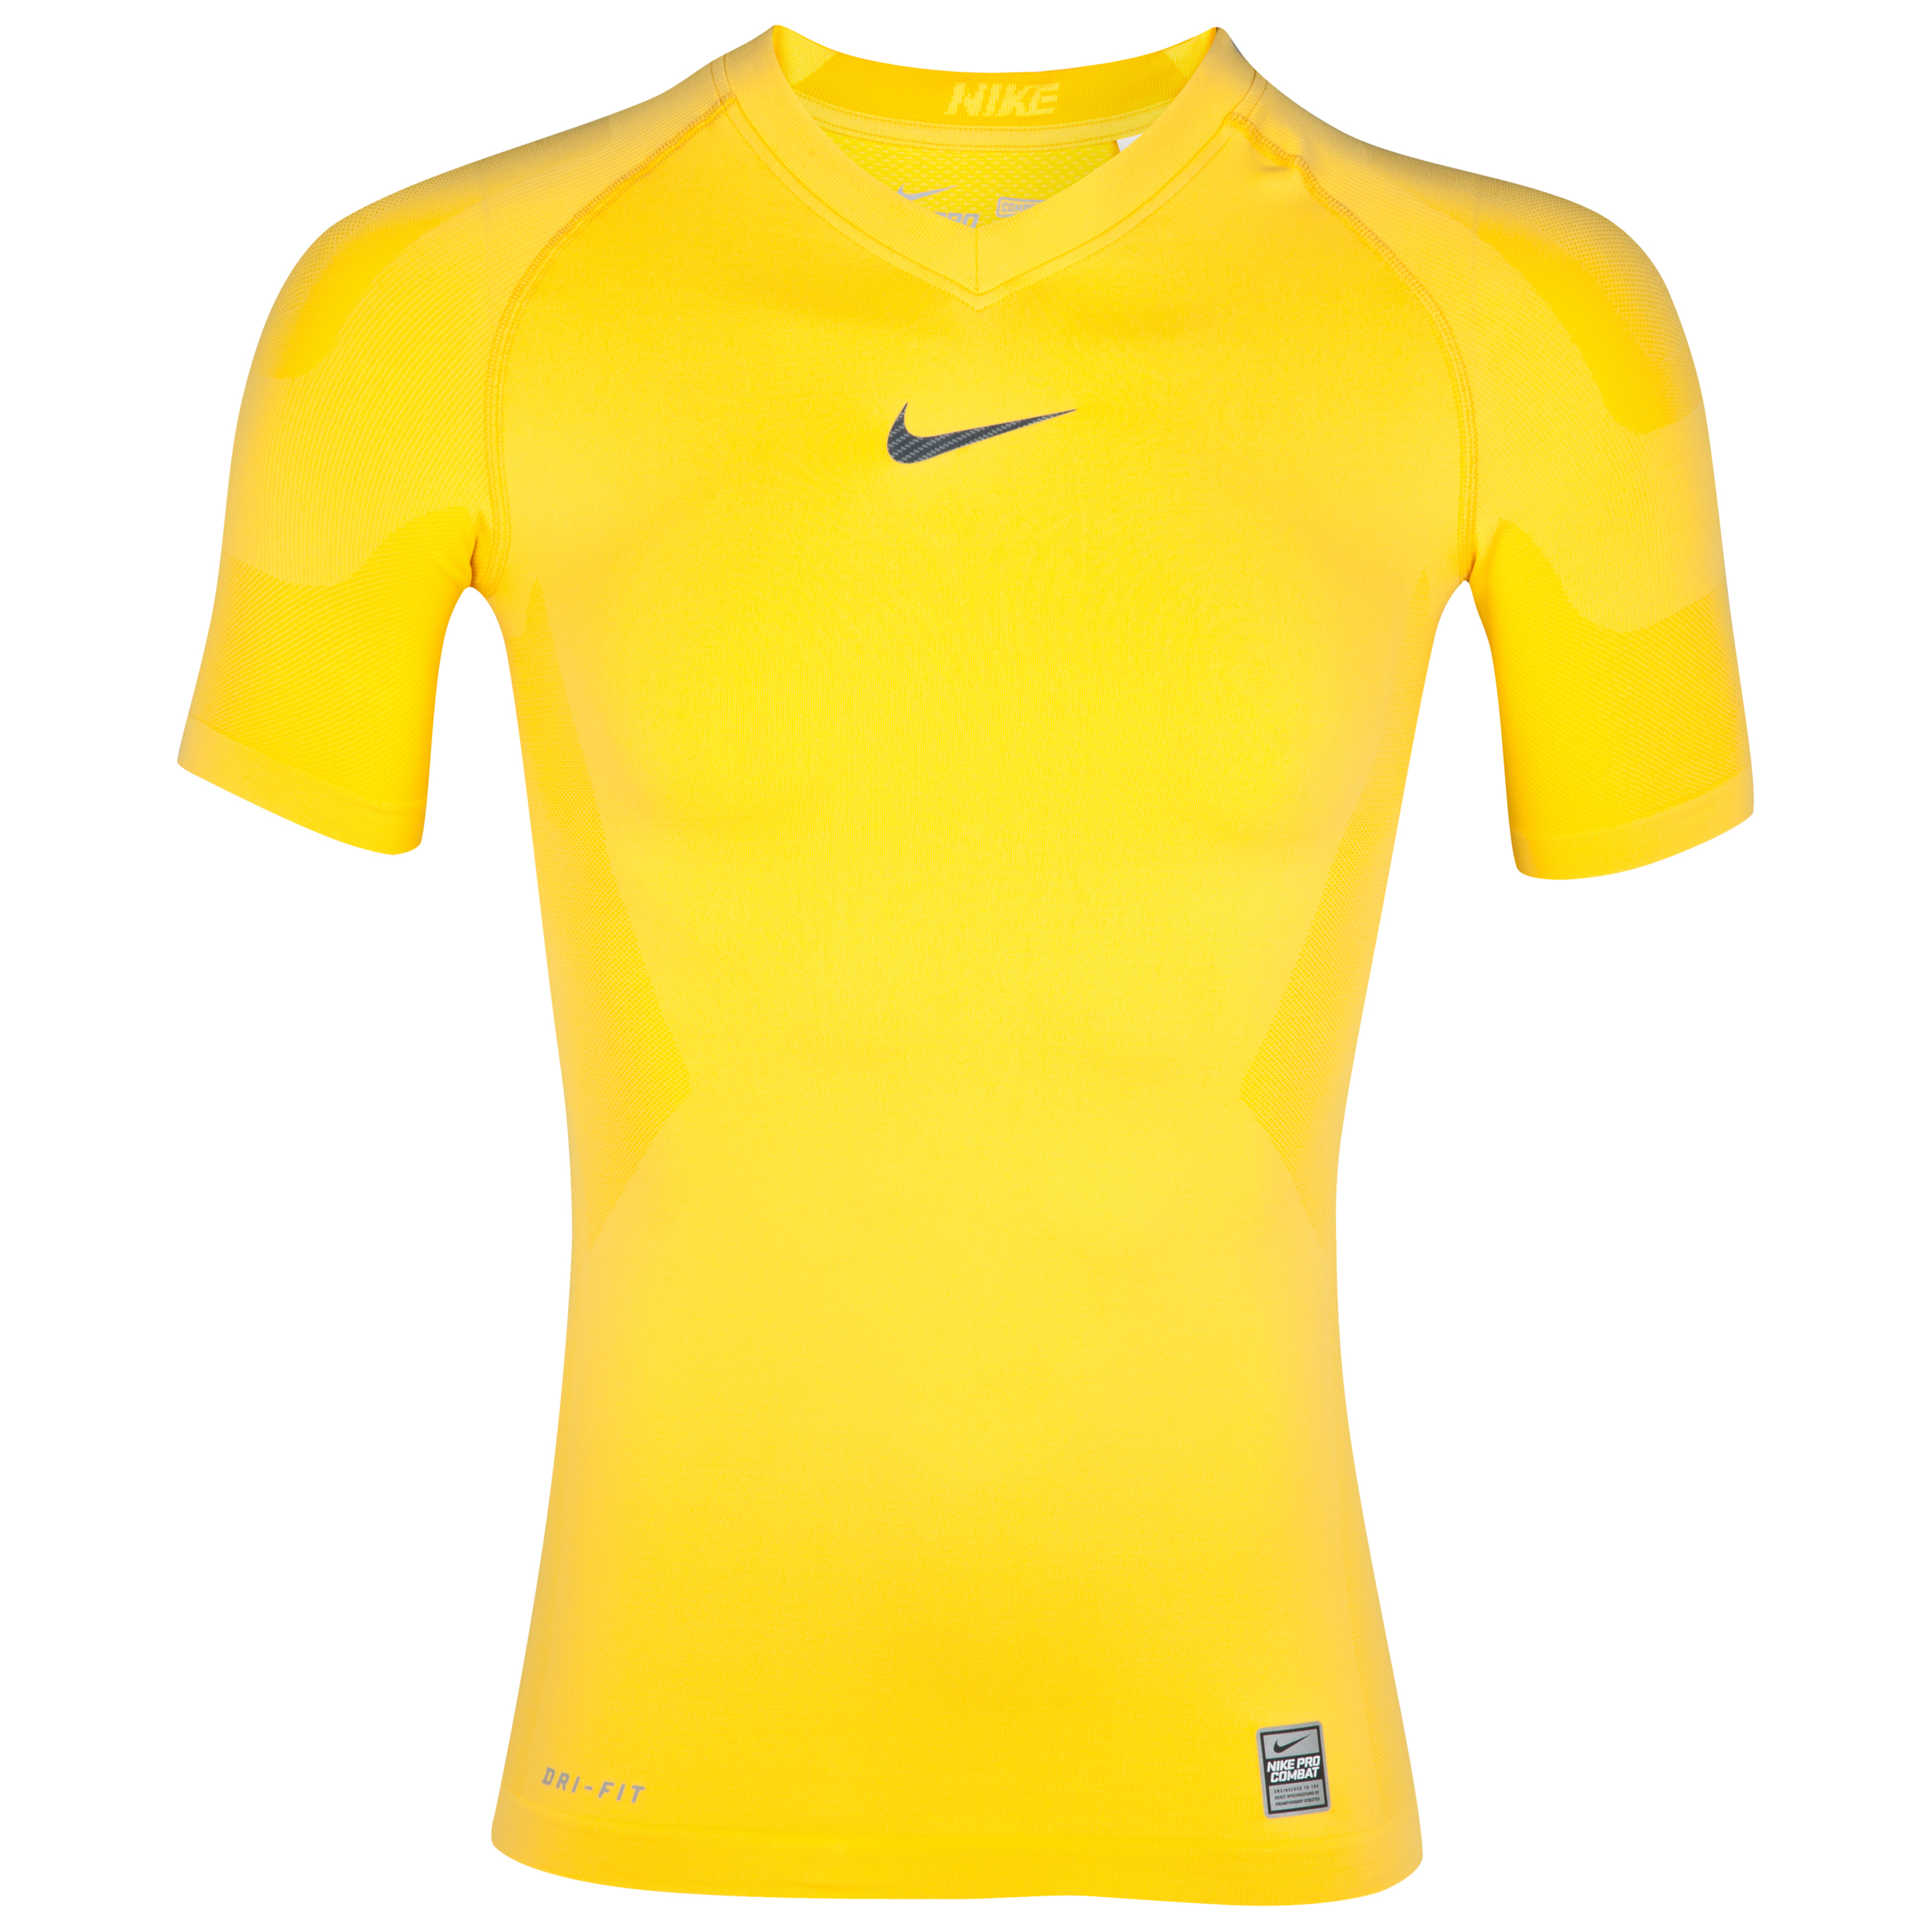 Nike Pro Combat Hypercool Baselayer Top - Varsity Maize